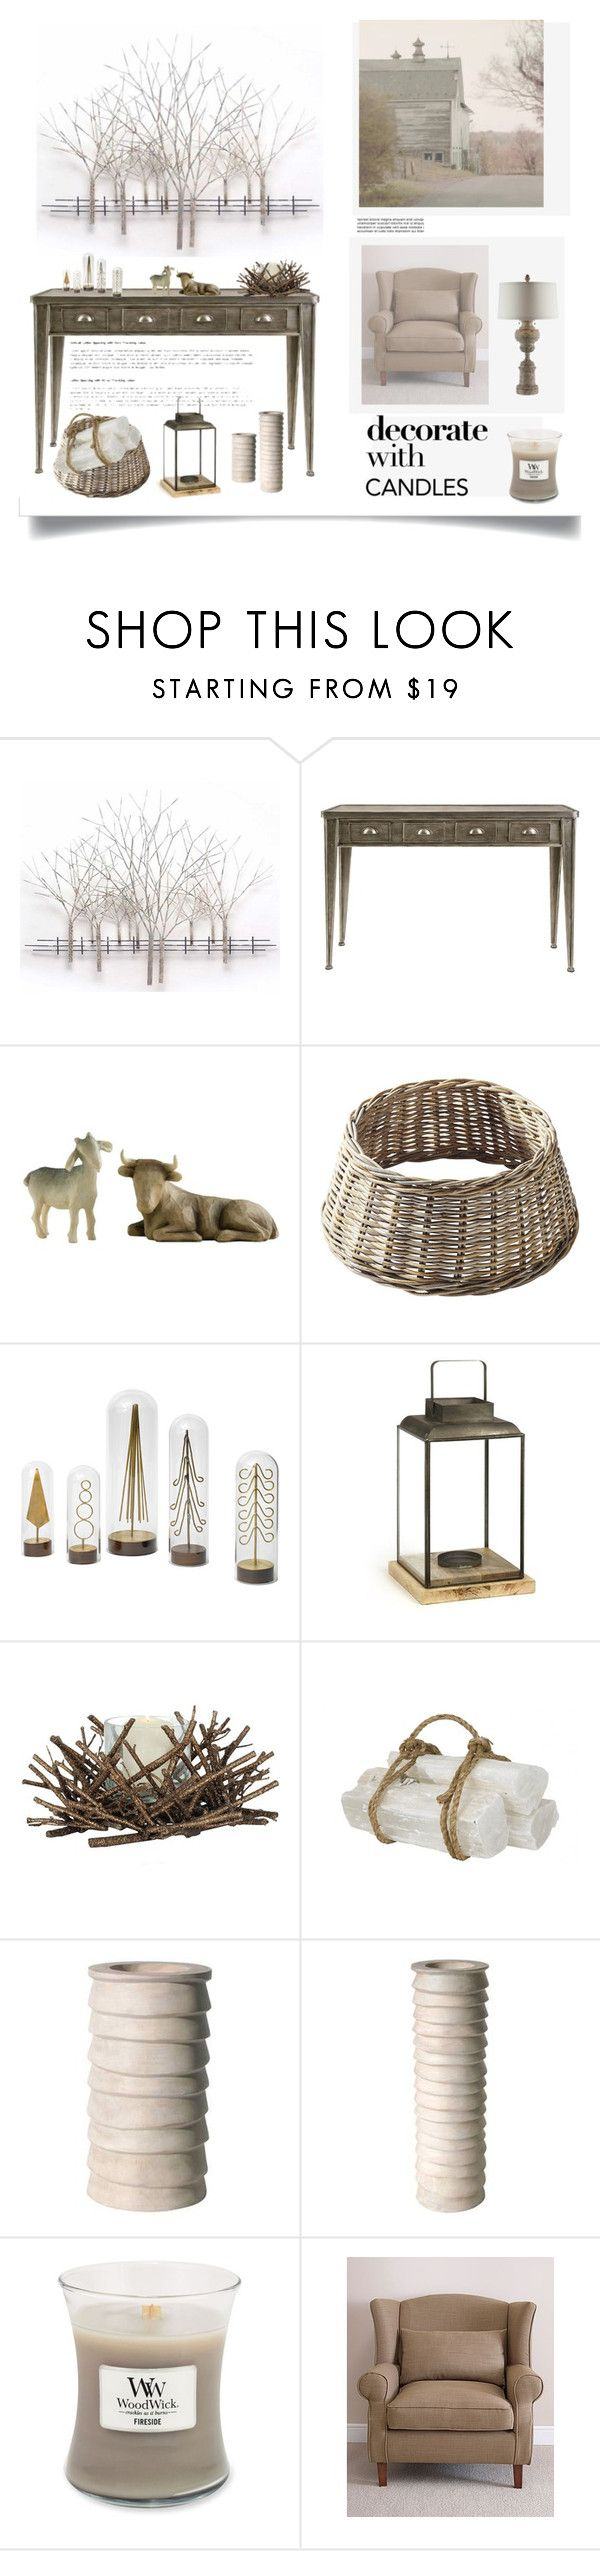 Home decor collage from january 2017 featuring currey company -  Decorate With Candles By Dianefantasy Liked On Polyvore Featuring Interior Interiors